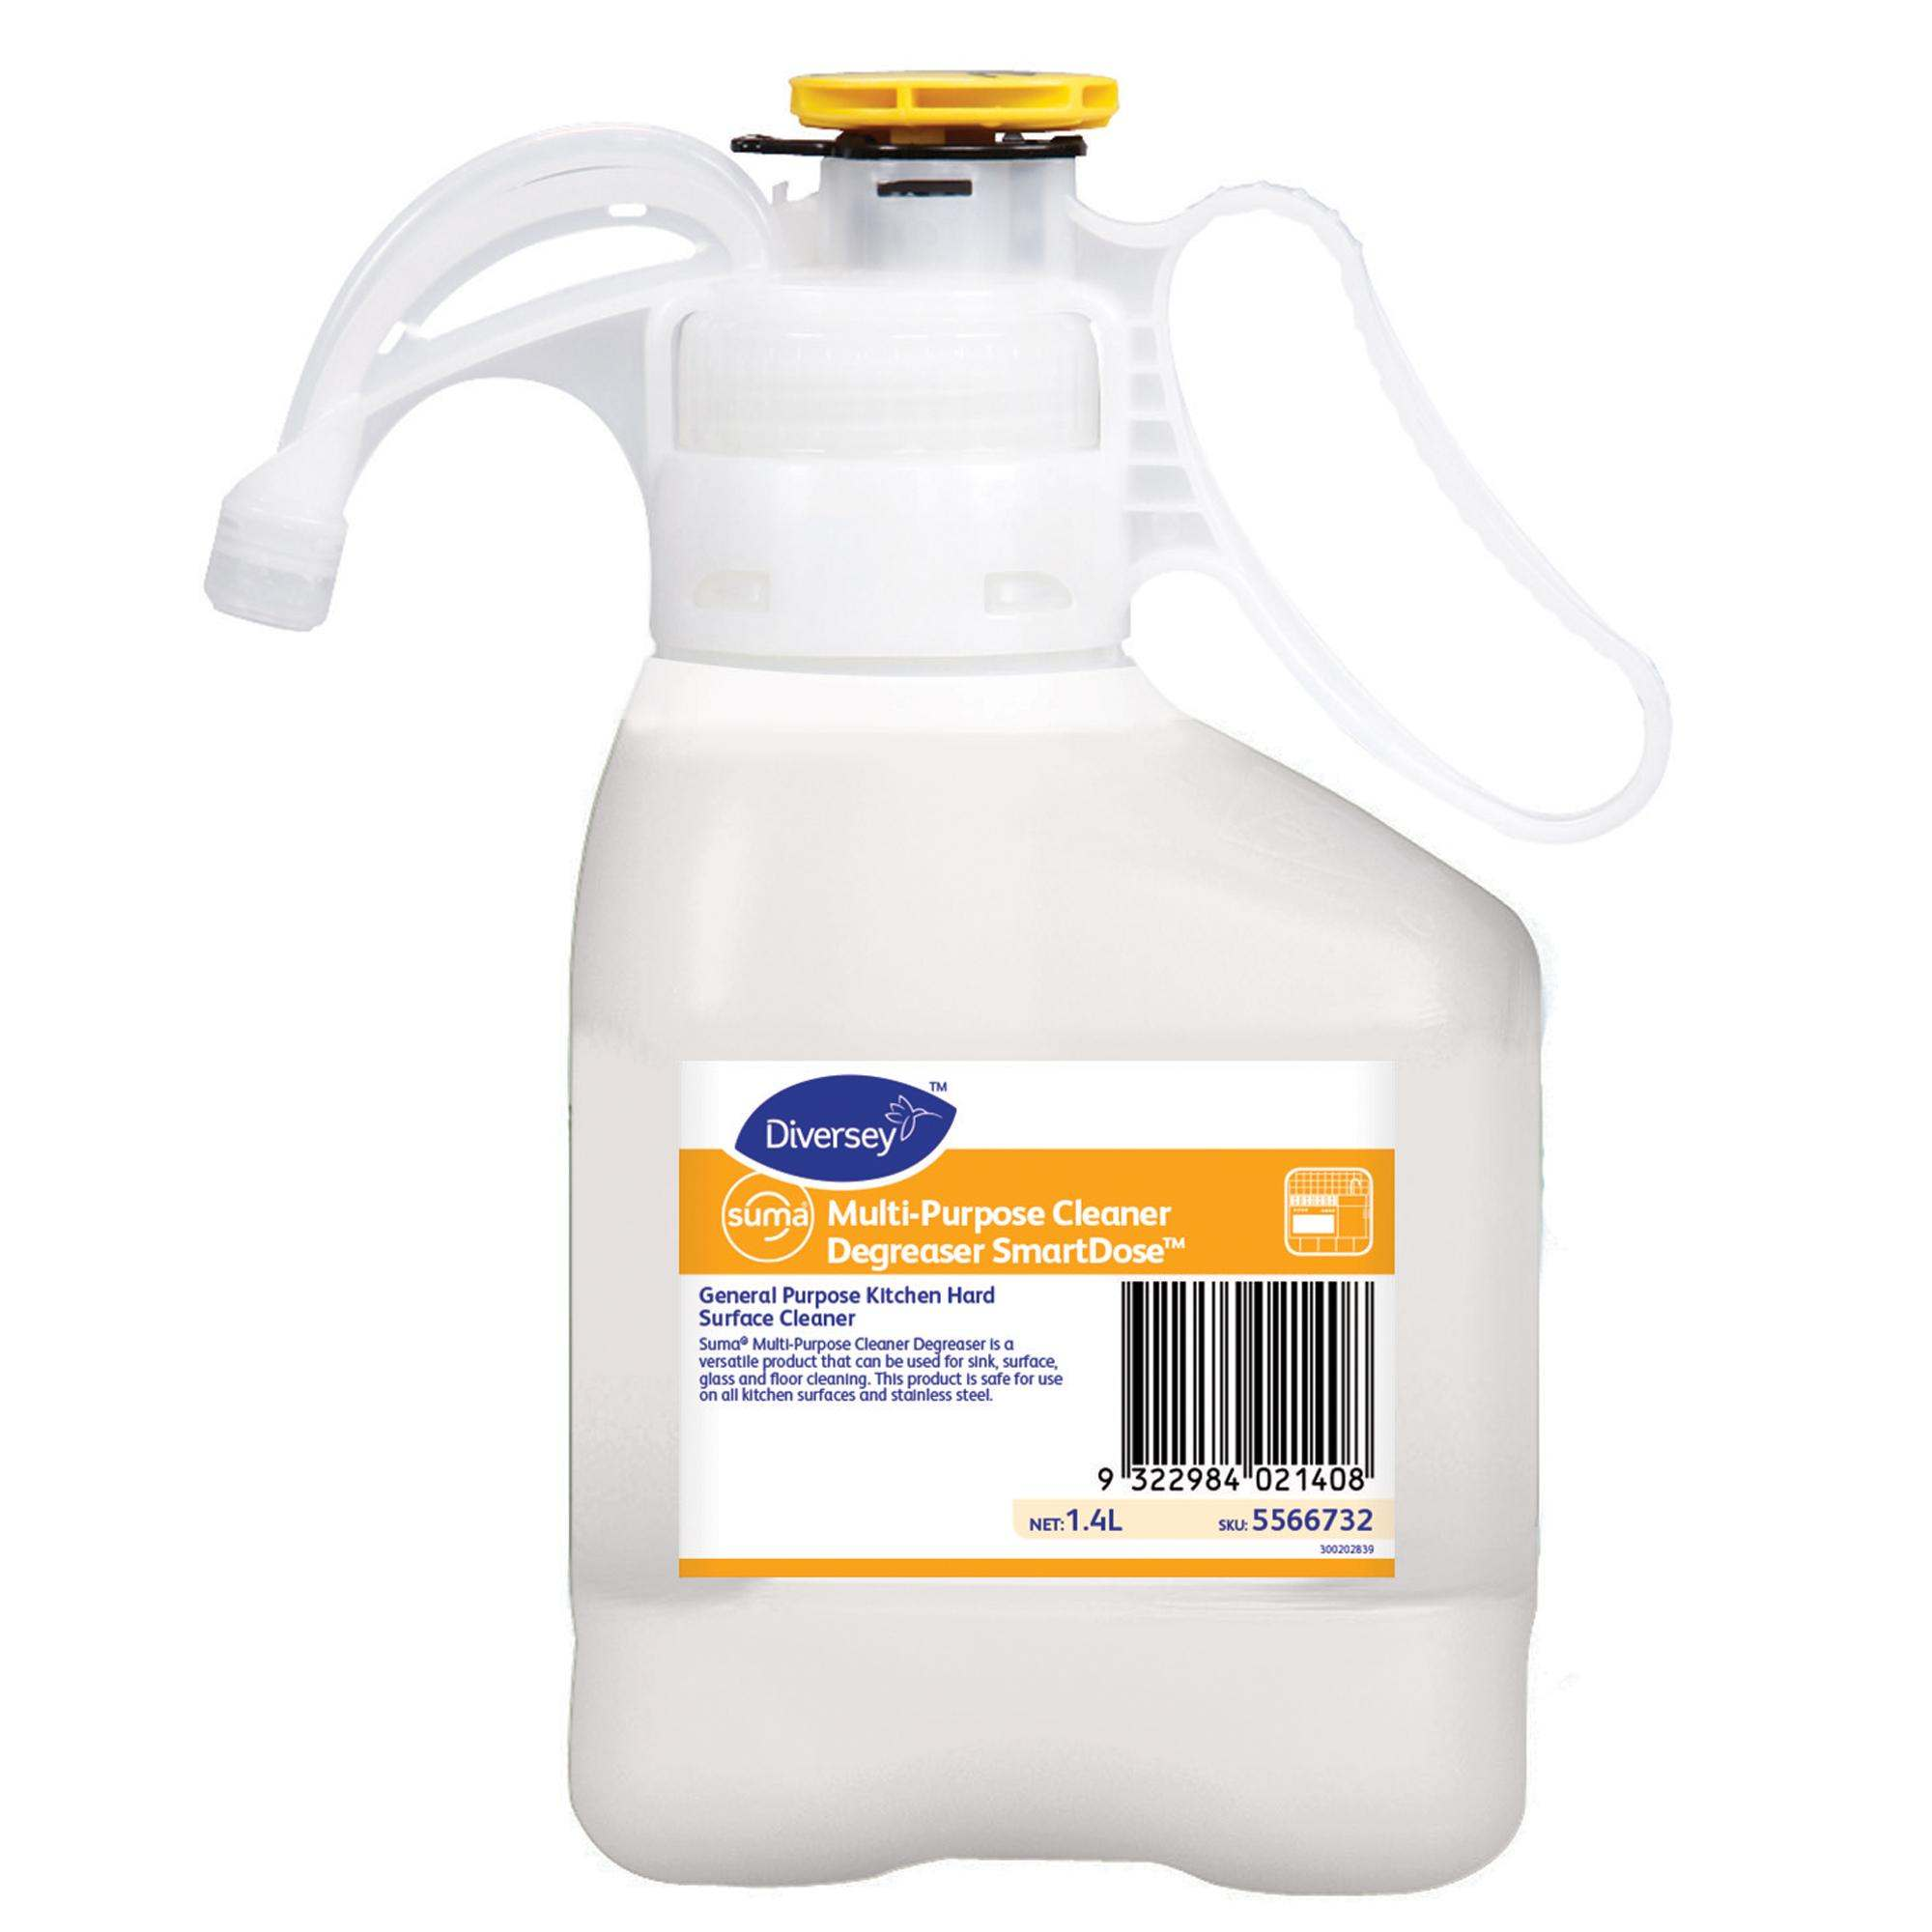 5566732%20Suma%20Multi-purpose%20Cleaner%20Degreaser%20Smartdose%20AU%20_%201.4L%202000x2000px.jpg